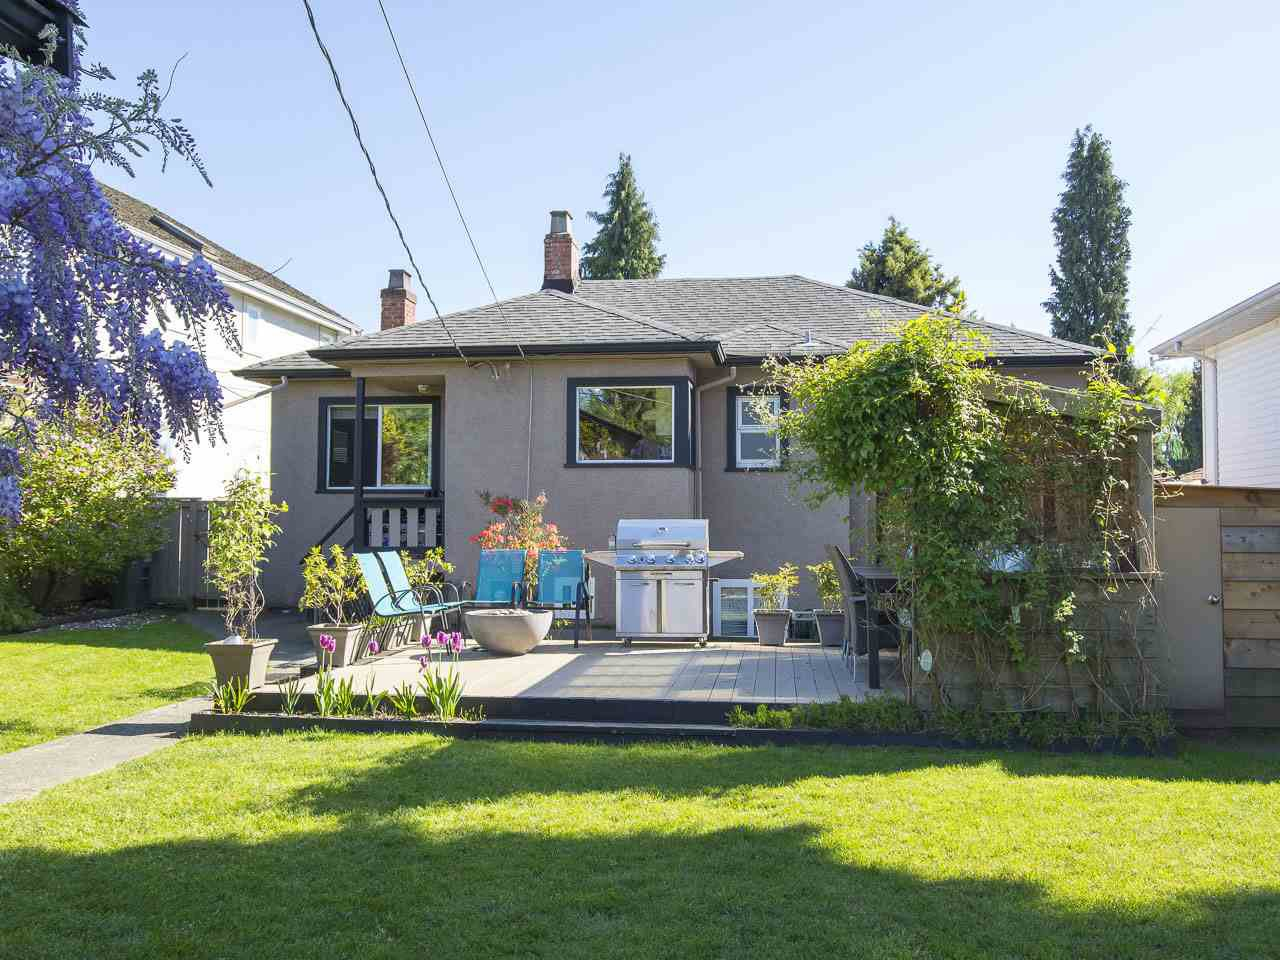 Photo 17: Photos: 731 W KING EDWARD AVENUE in Vancouver: Cambie House for sale (Vancouver West)  : MLS®# R2204992